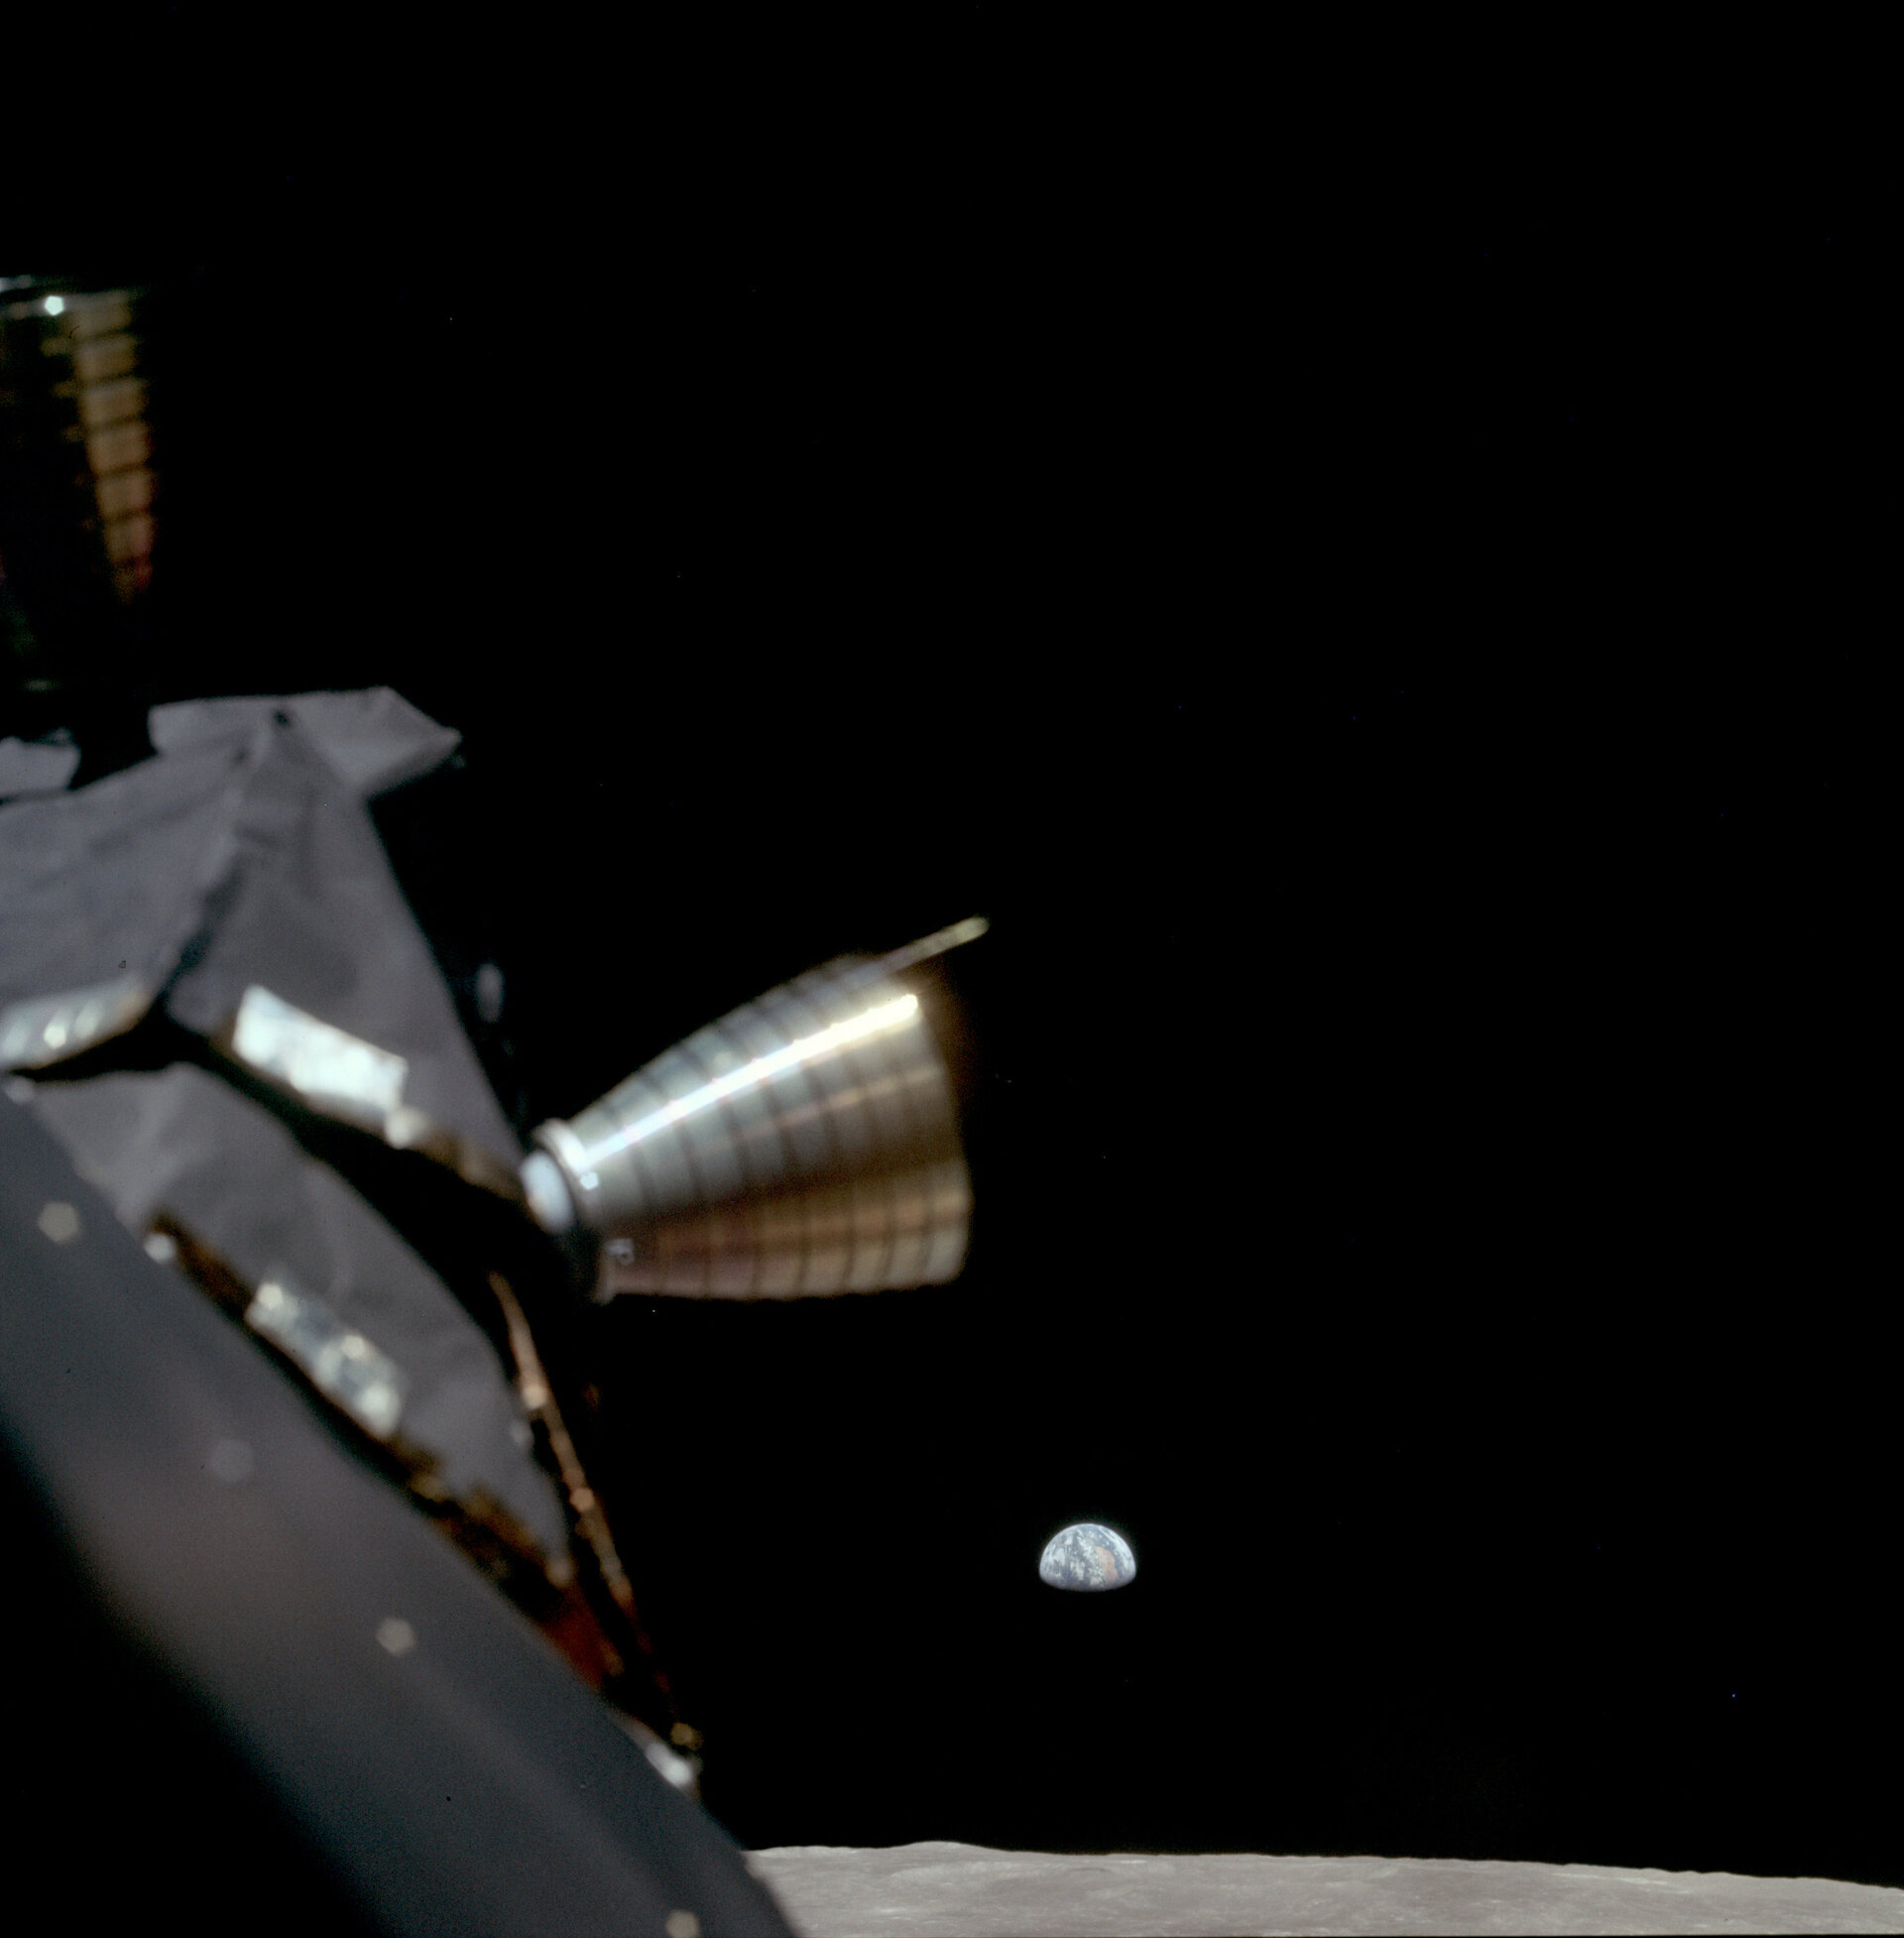 Apollo 11 arrives in lunar orbit